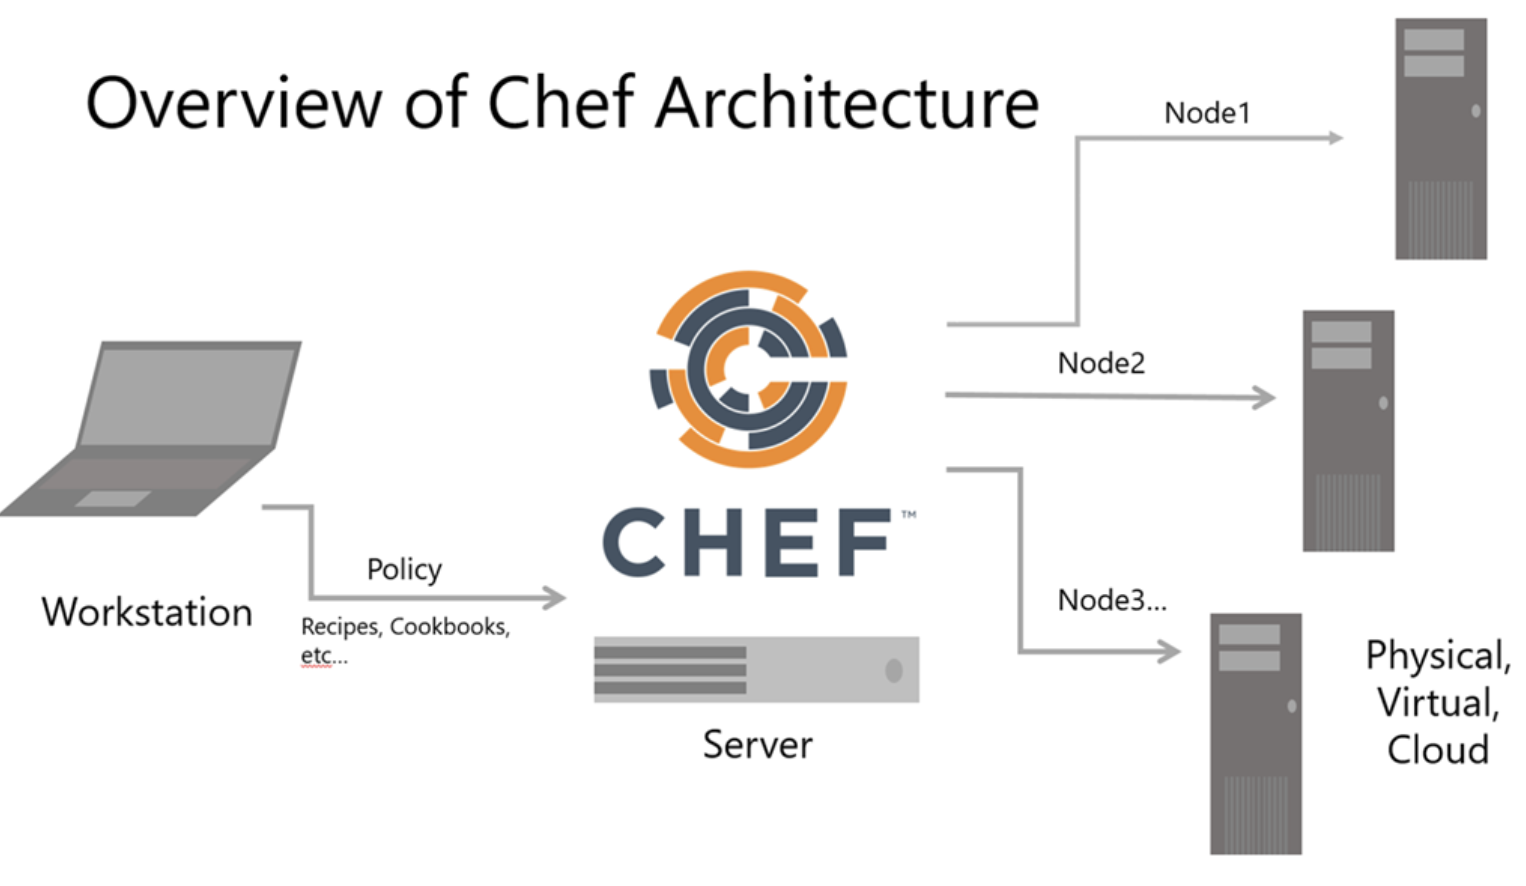 Overview of Chef Architecture